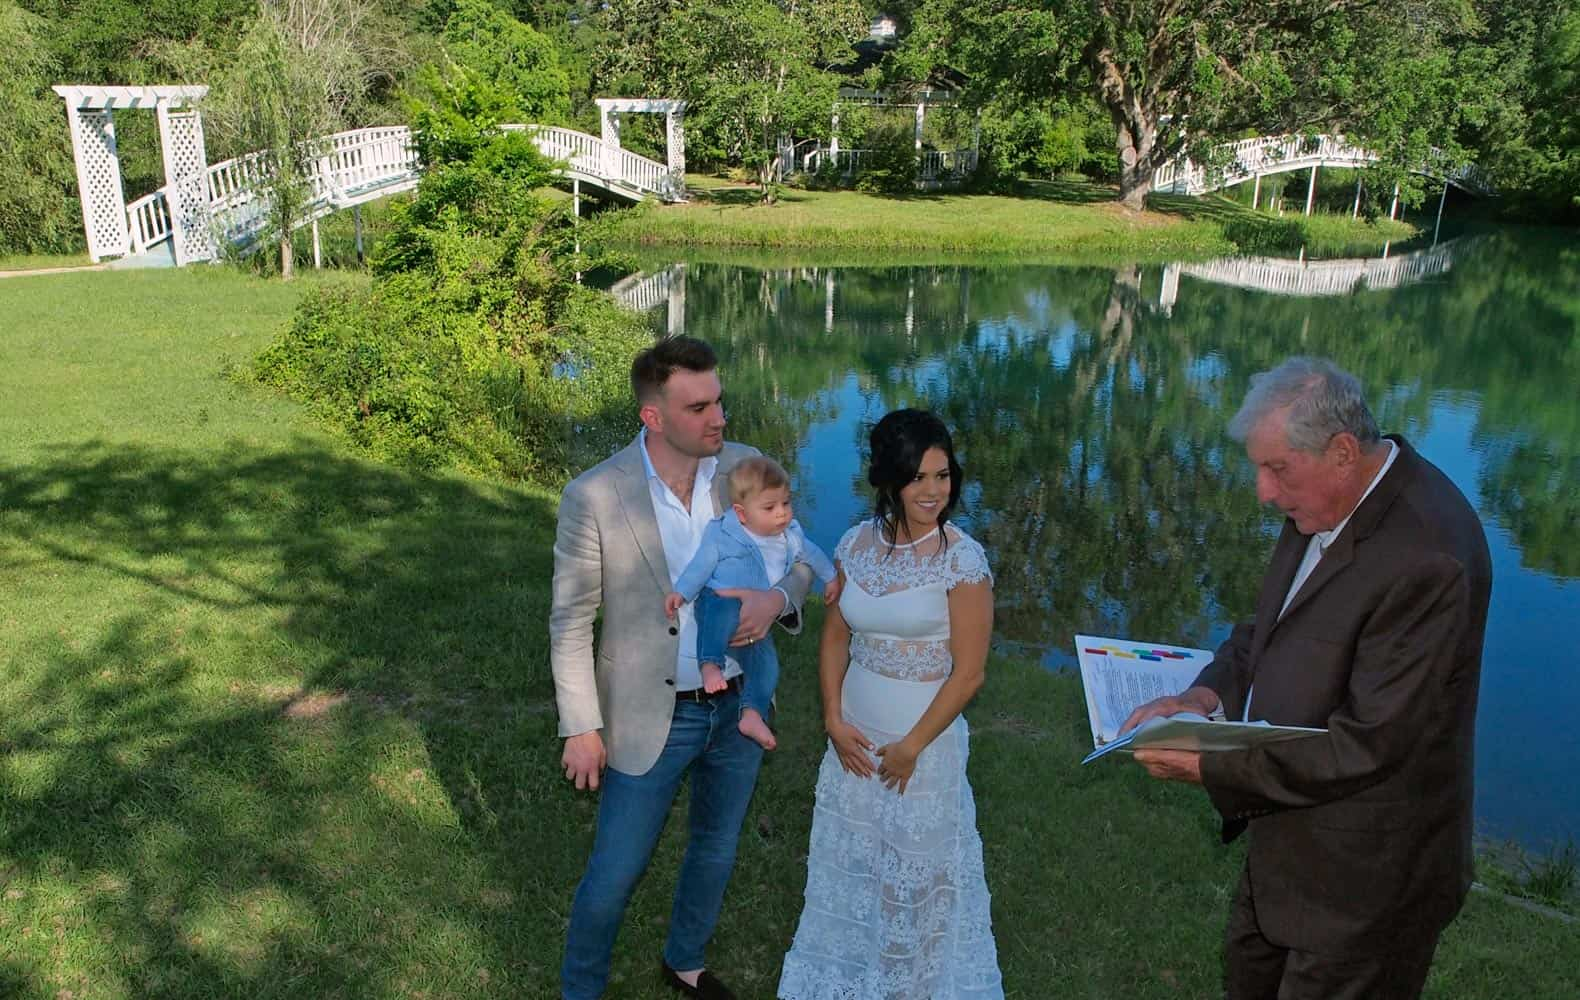 A couple and a small child in a small wedding ceremony at our Texas wedding venue